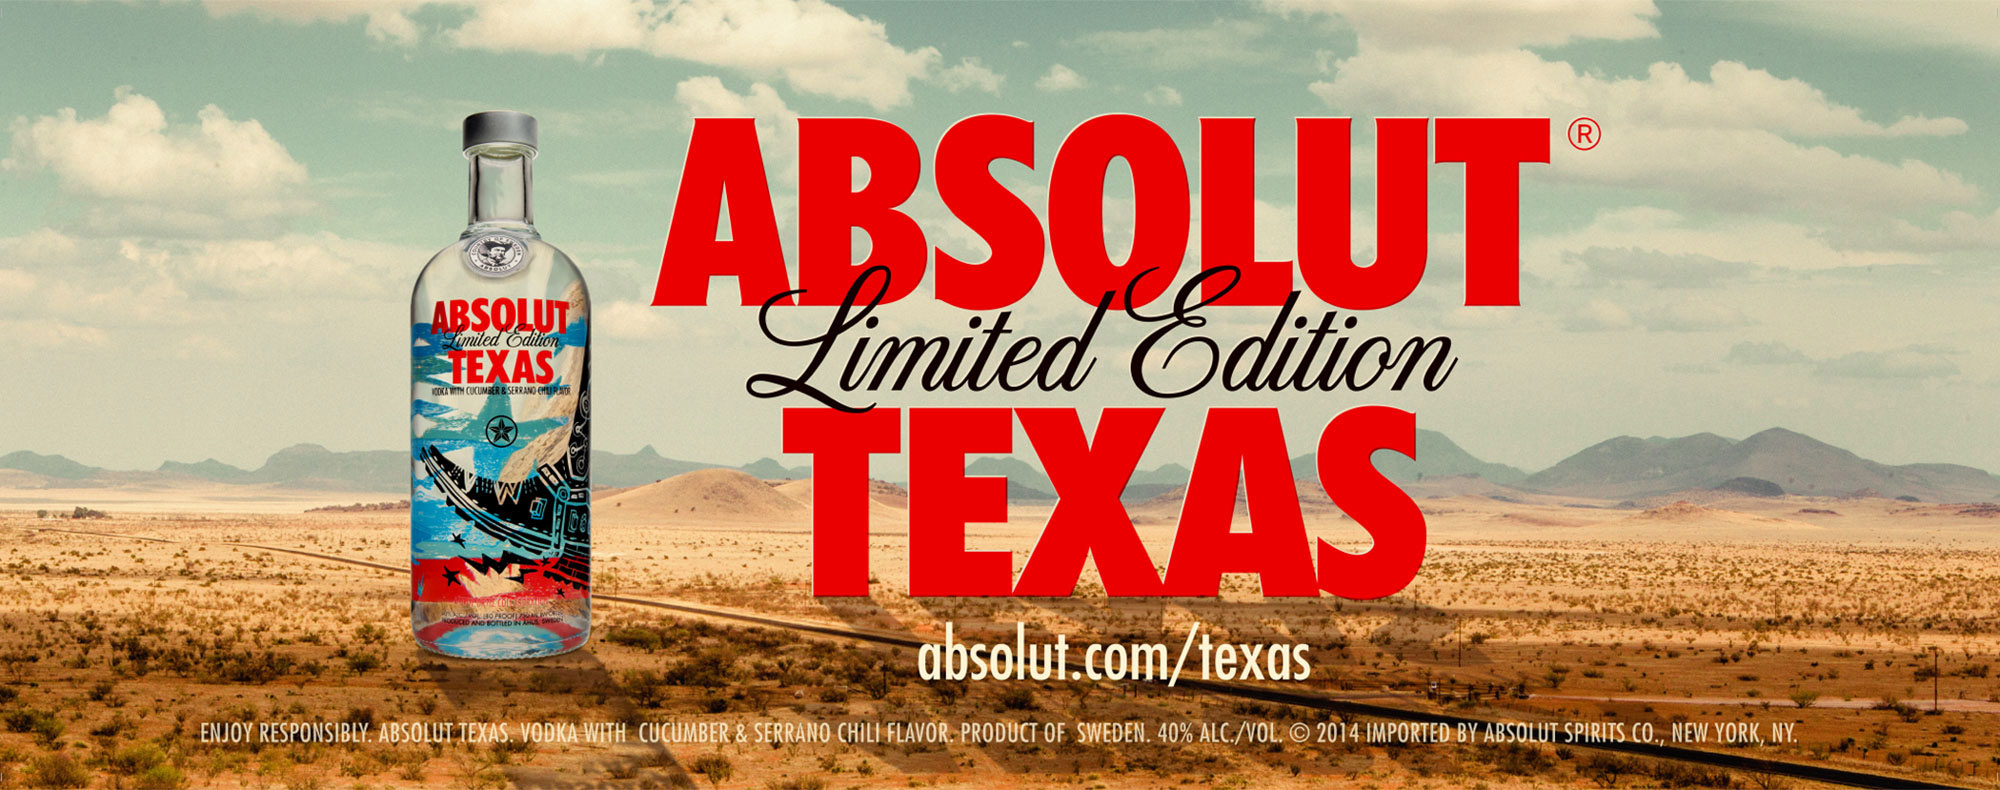 Absolut Texas Advertisment